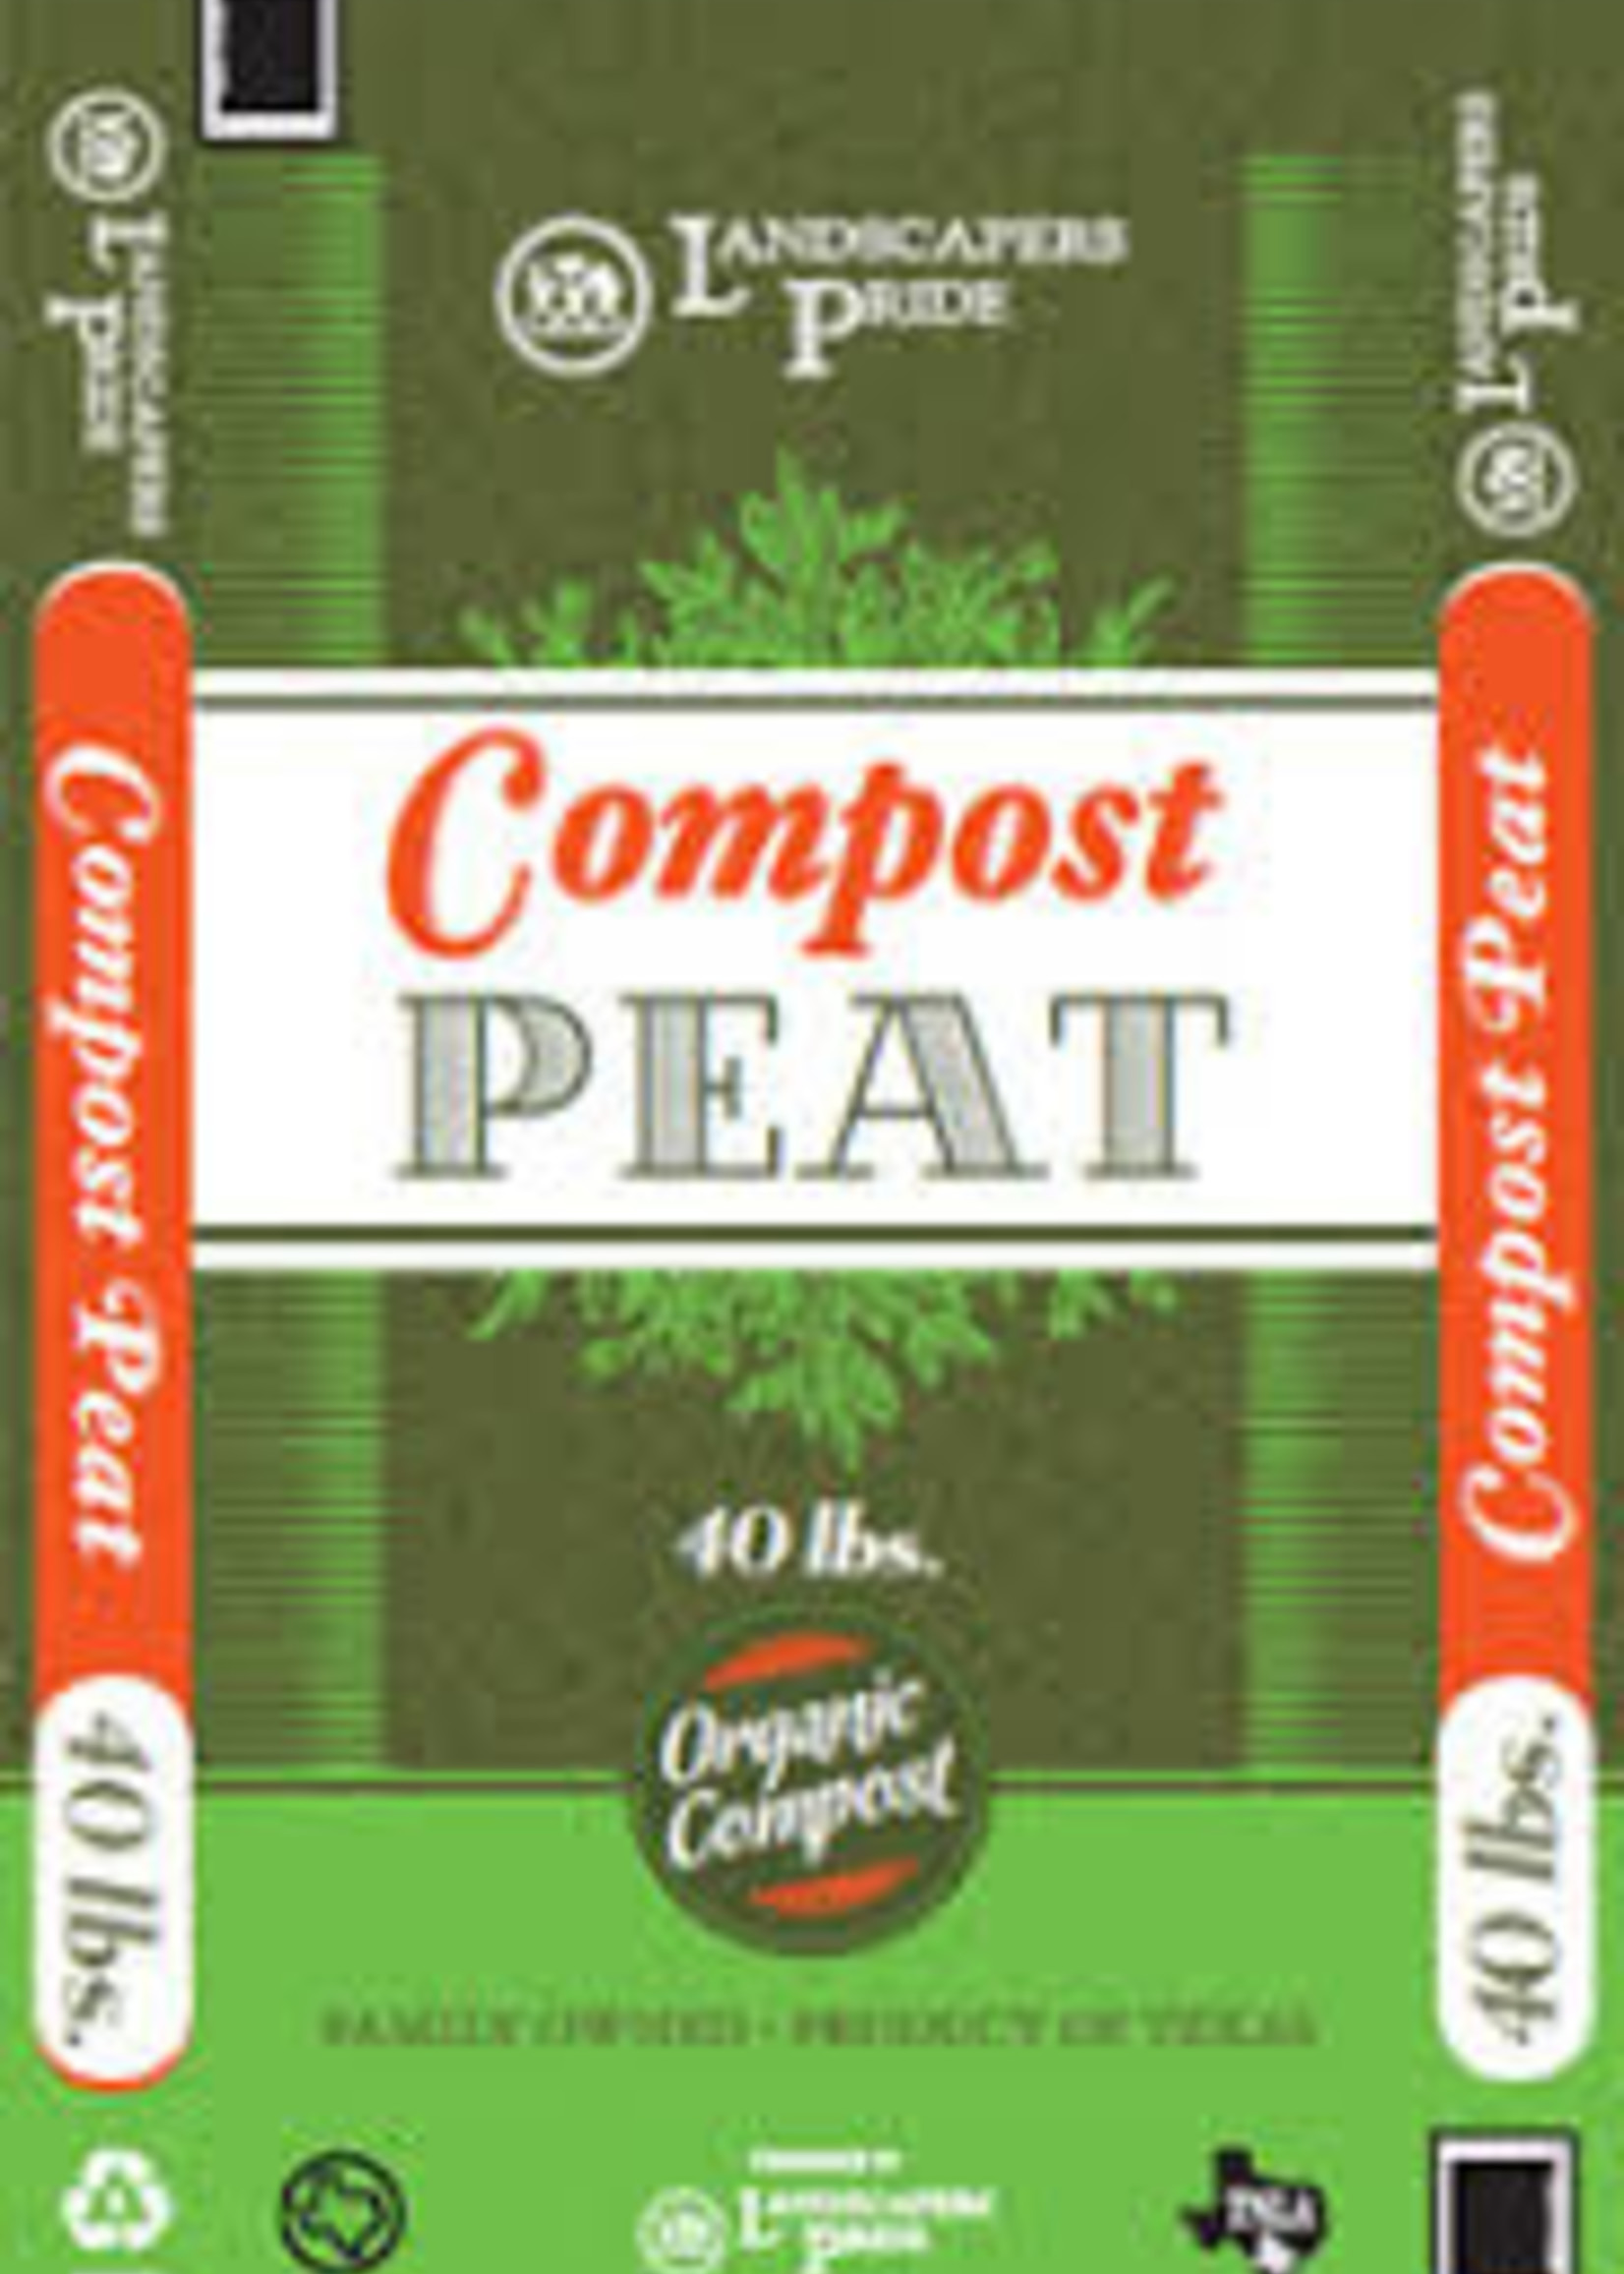 Composted Peat 40 lb $4.99